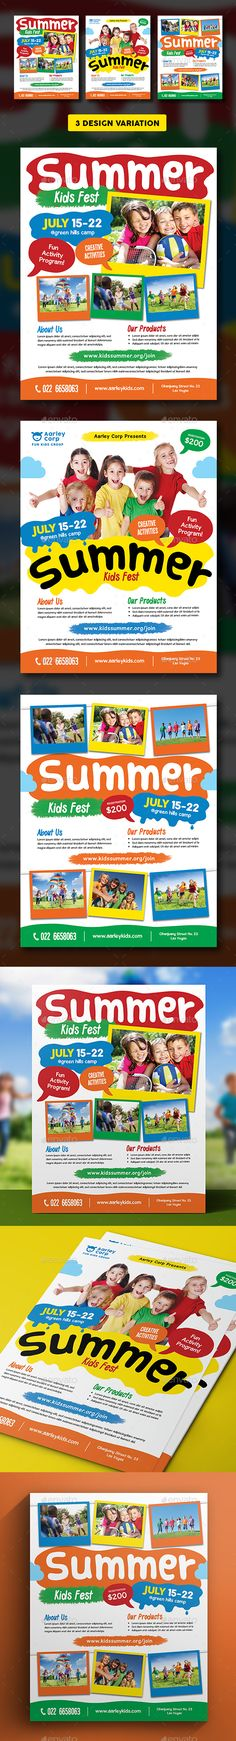 Kids Summer Camp Flyer | Flyer Printing, Print Templates And Brochures